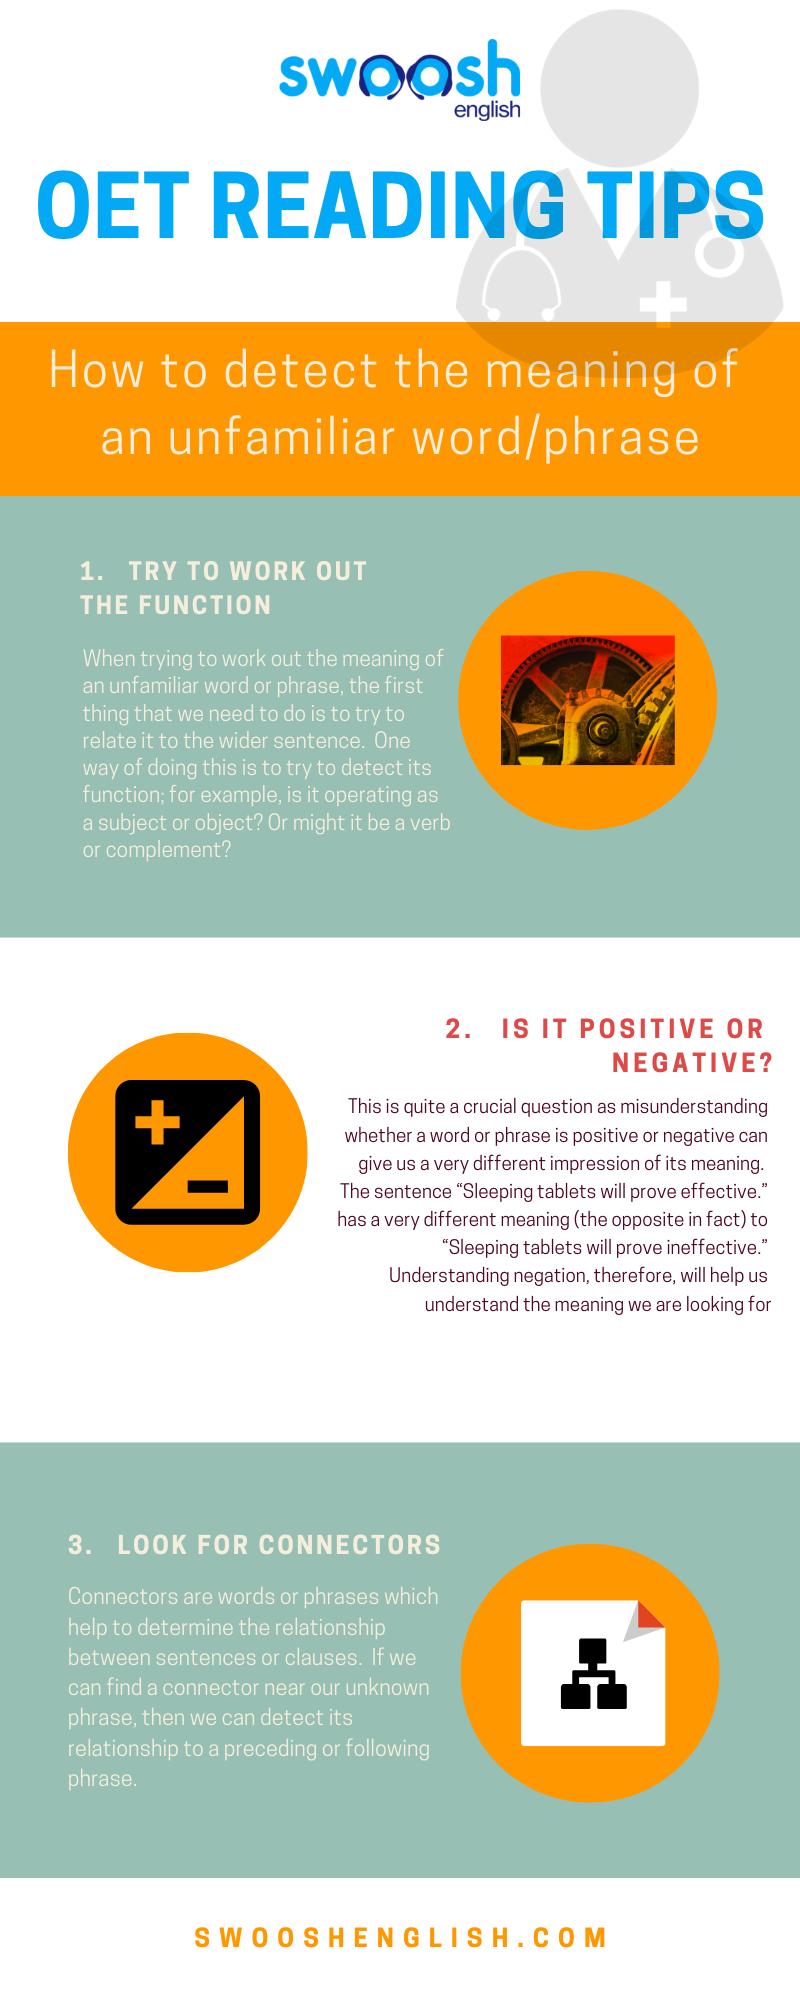 Swoosh English OET Reading Tips How to detect the meaning of an unfamiliar word/phrase infographic